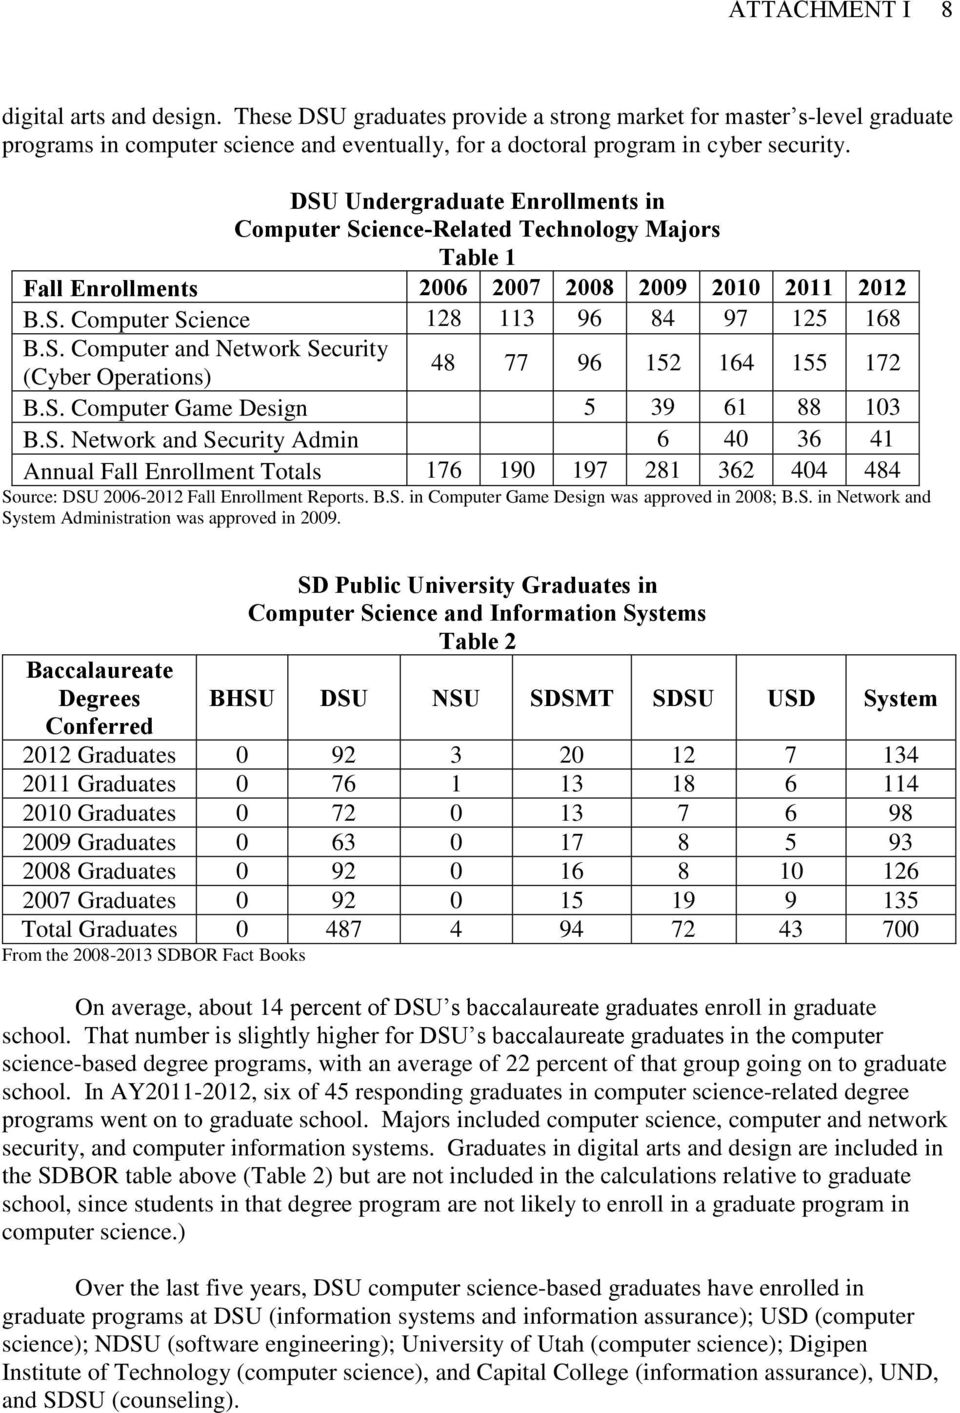 S. Computer Game Design 5 39 61 88 103 B.S. Network and Security Admin 6 40 36 41 Annual Fall Enrollment Totals 176 190 197 281 362 404 484 Source: DSU 2006-2012 Fall Enrollment Reports. B.S. in Computer Game Design was approved in 2008; B.